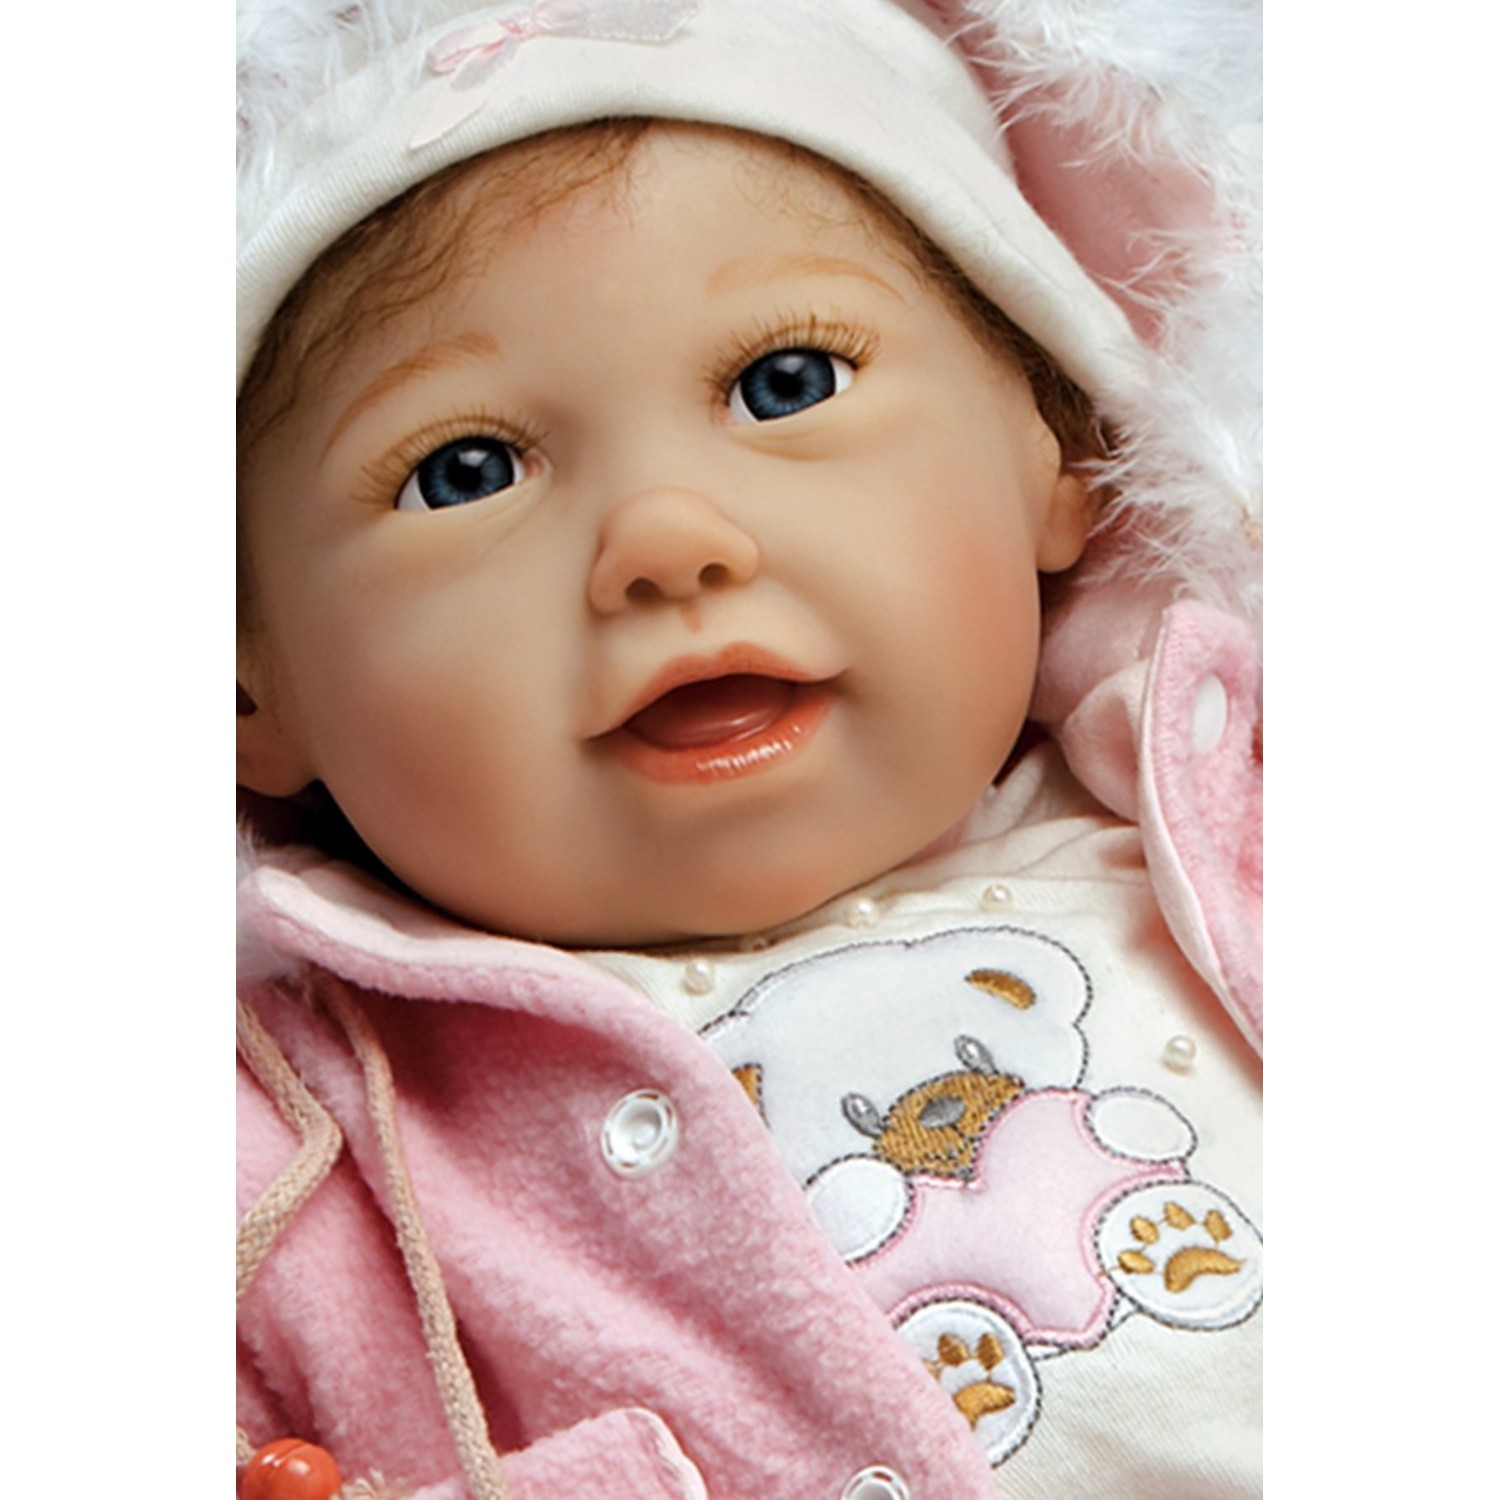 c349bac177bf Paradise Galleries Great To Reborn Baby Doll That Looks Real